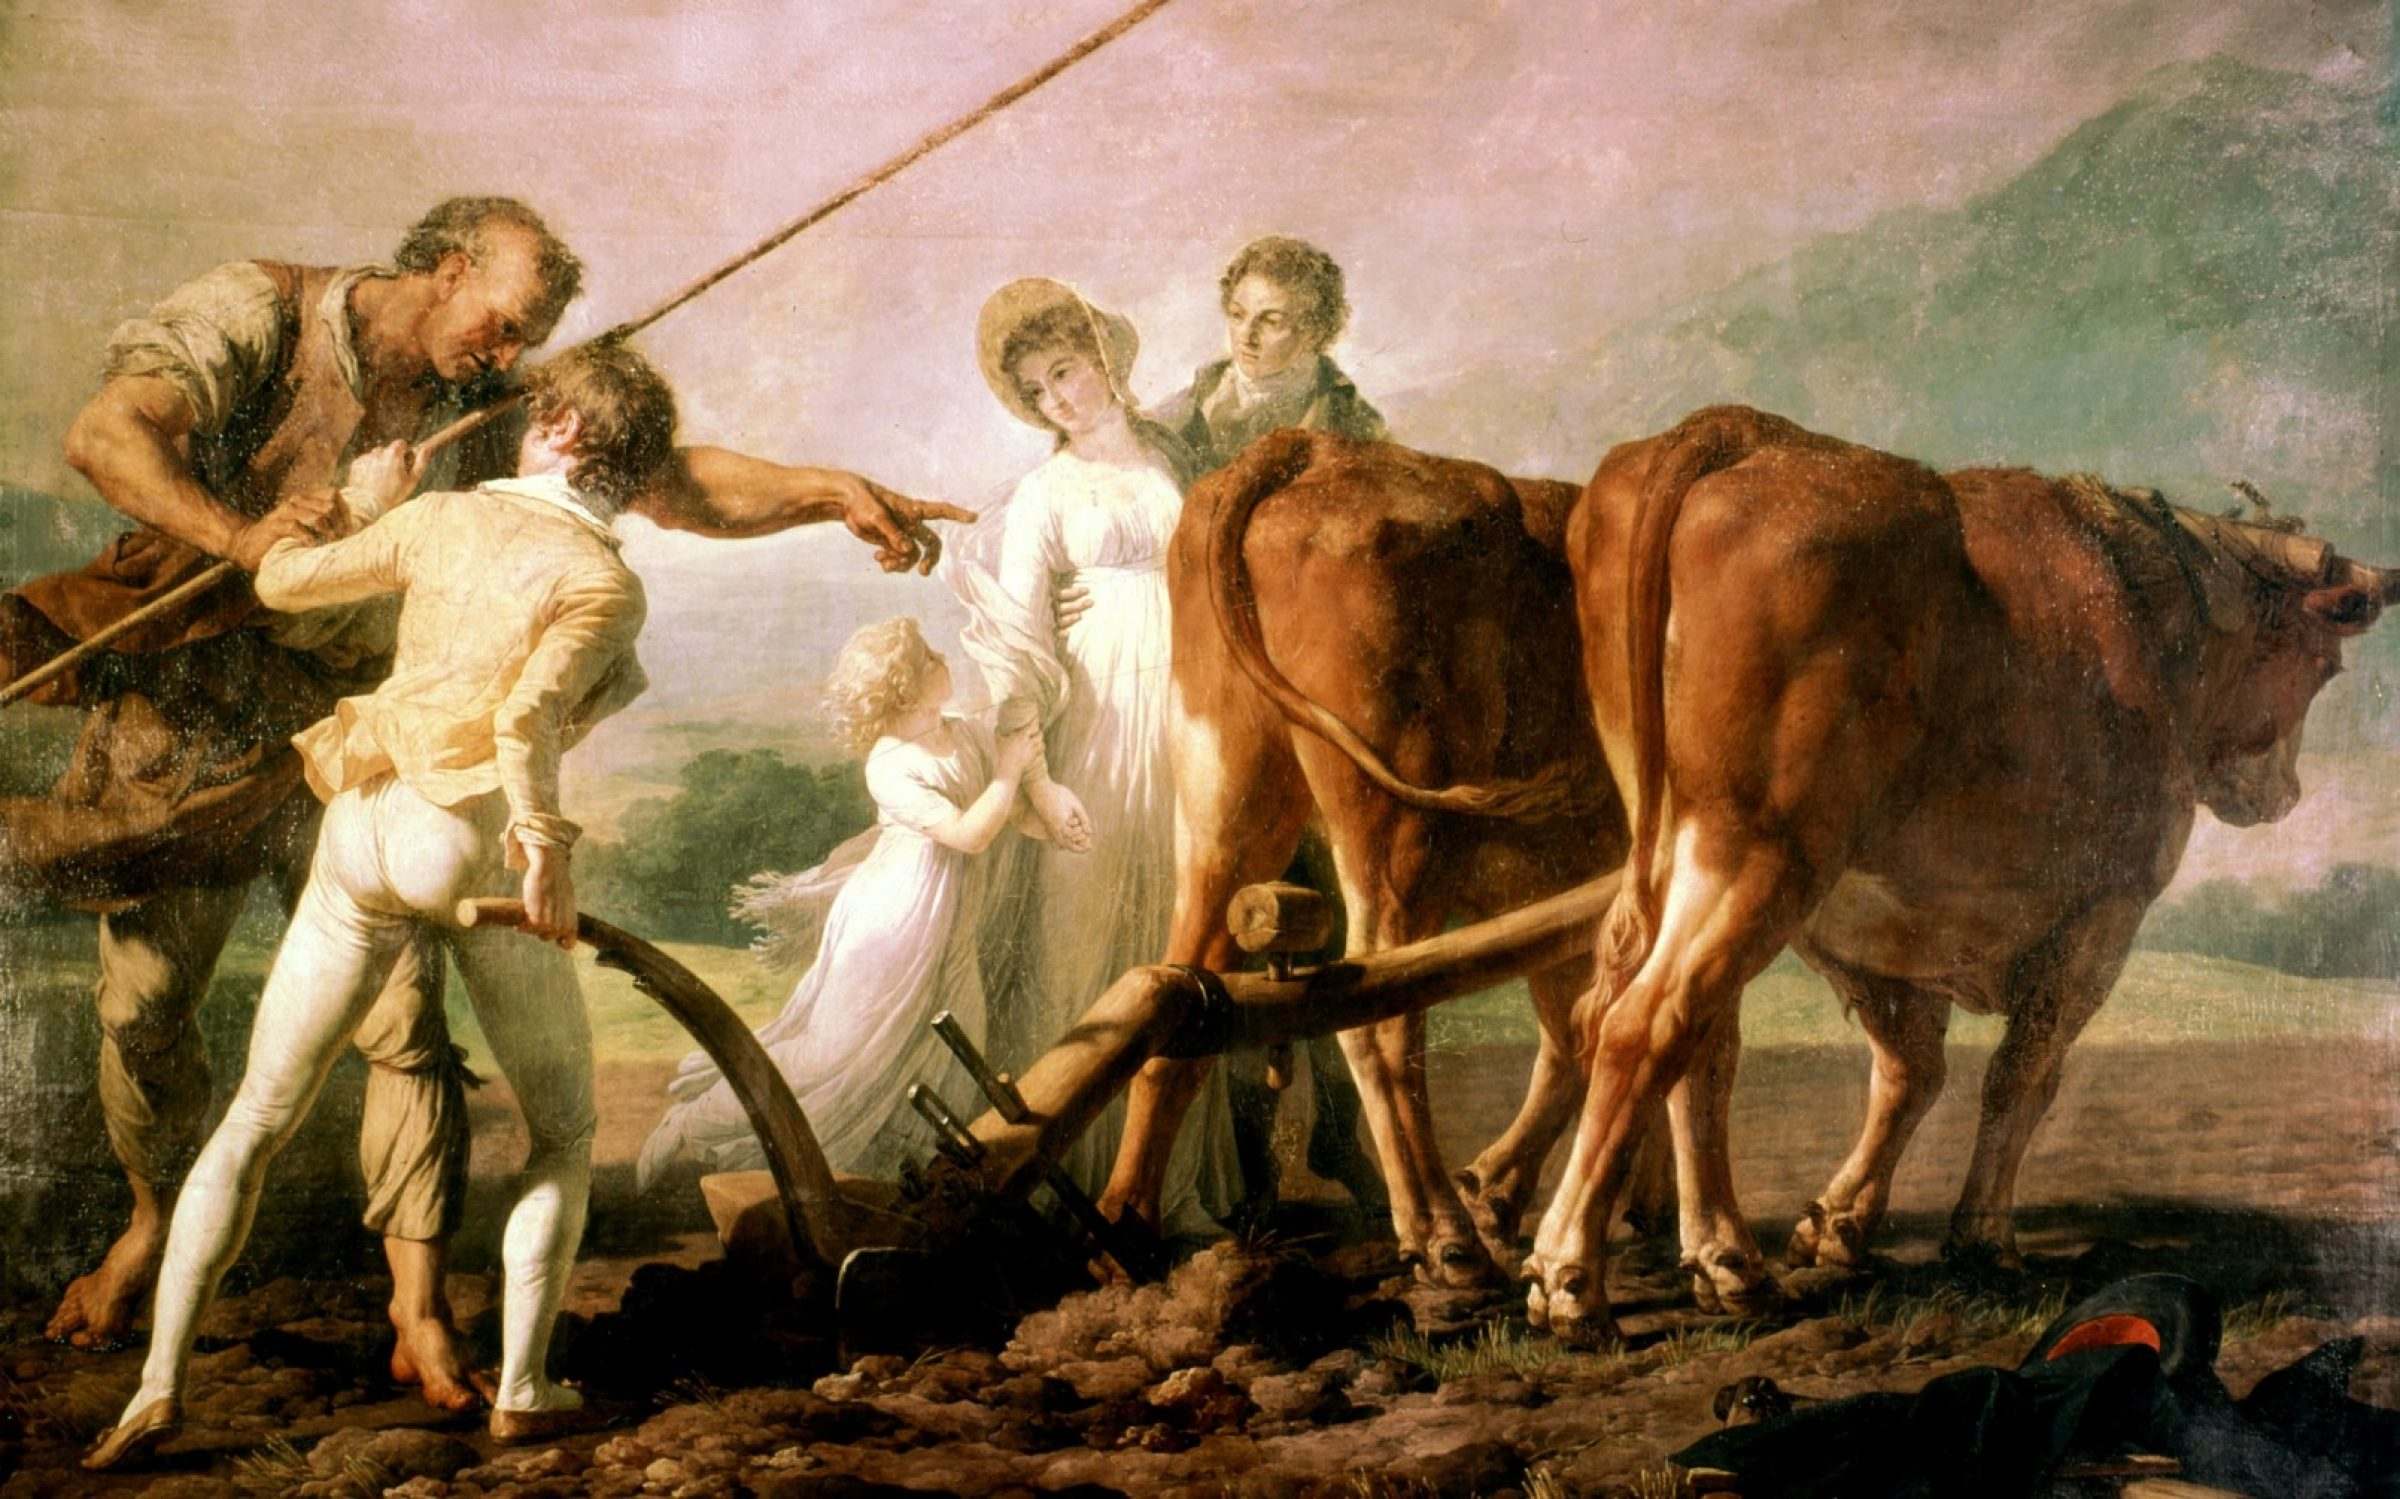 'Lesson in Ploughing', an illustration for 'Emile' by Jean-Jacques Rousseau. Education was regarded by Rousseau as the source of moral corruption. Credit: Photo12 / Universal Images Group / Getty Images.